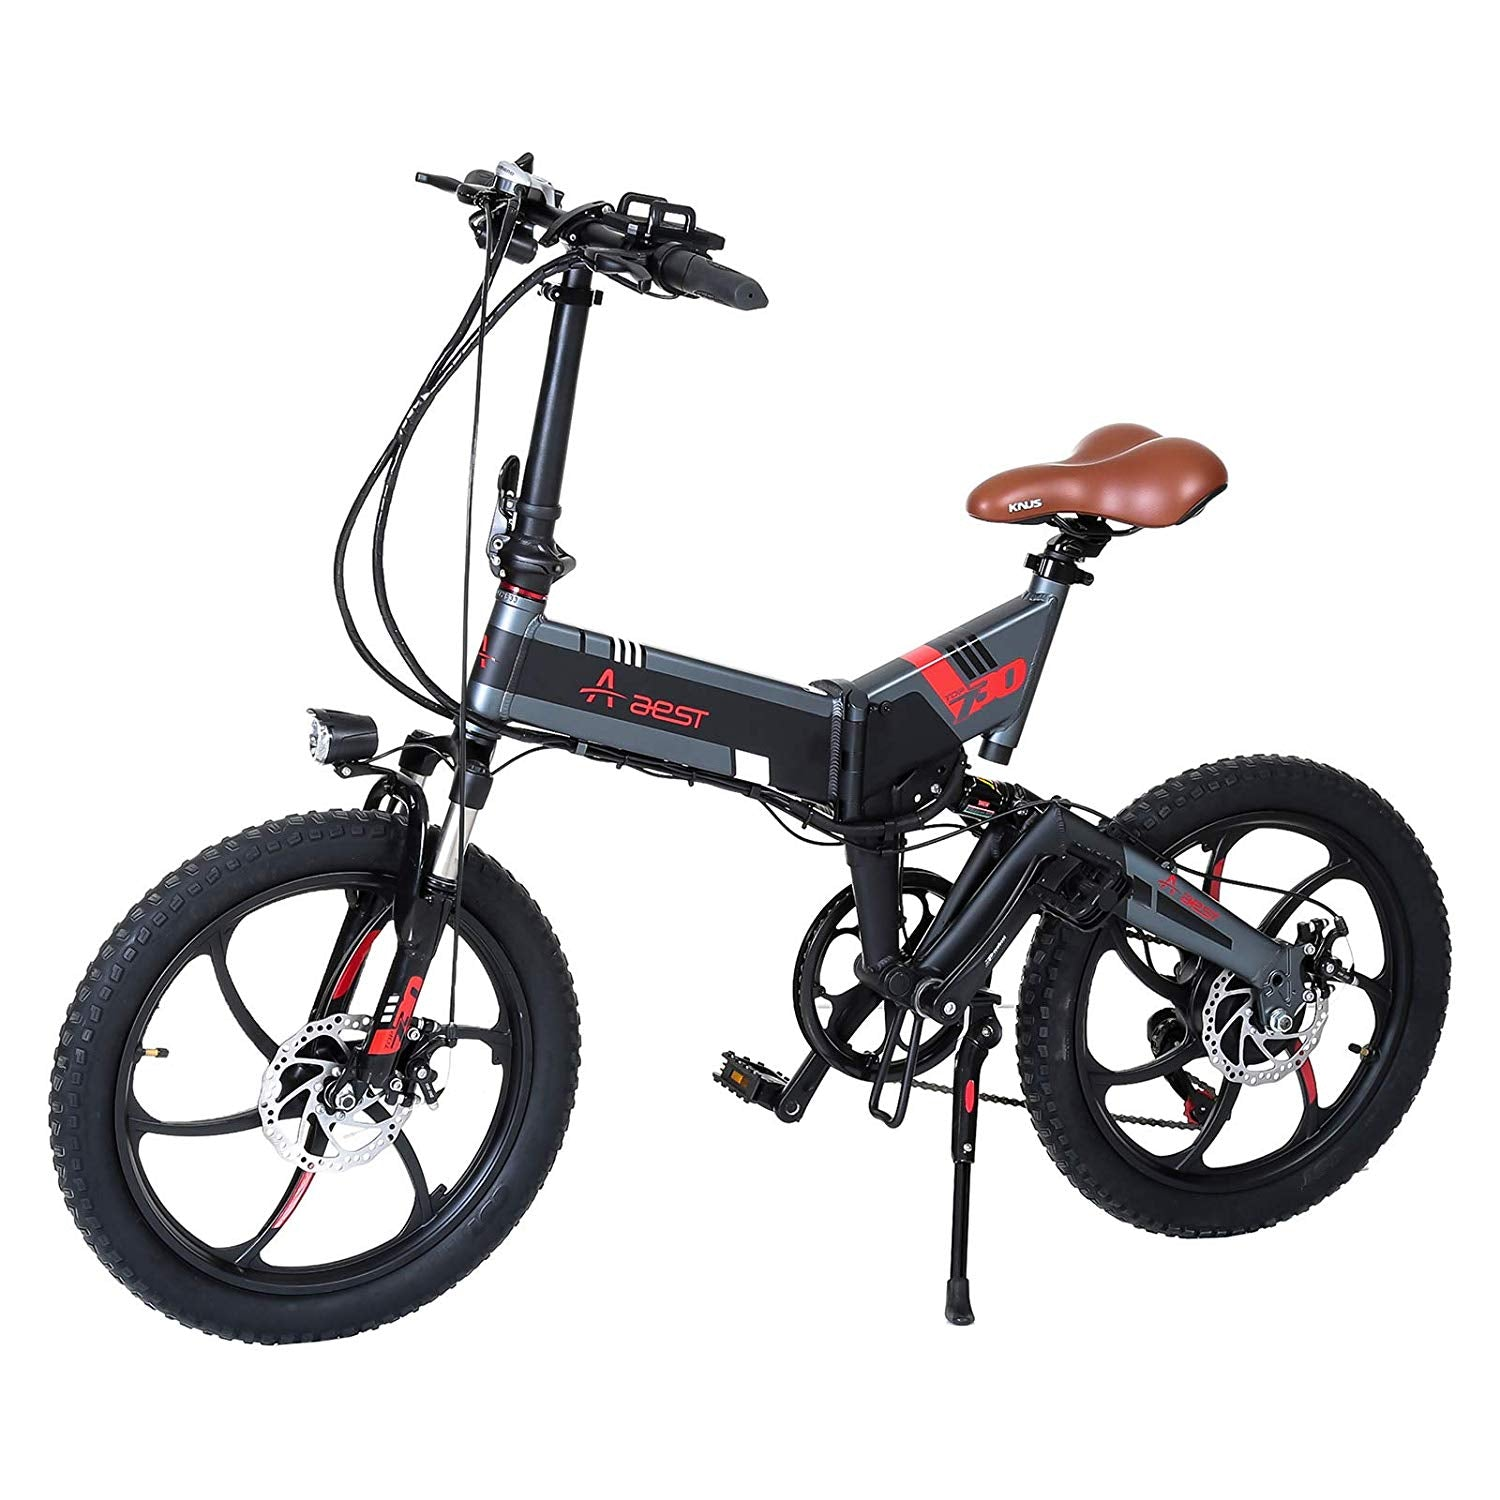 "Raf 48 V Folding Alloy Electric Bicycle  20"" - Grey - rafplay"